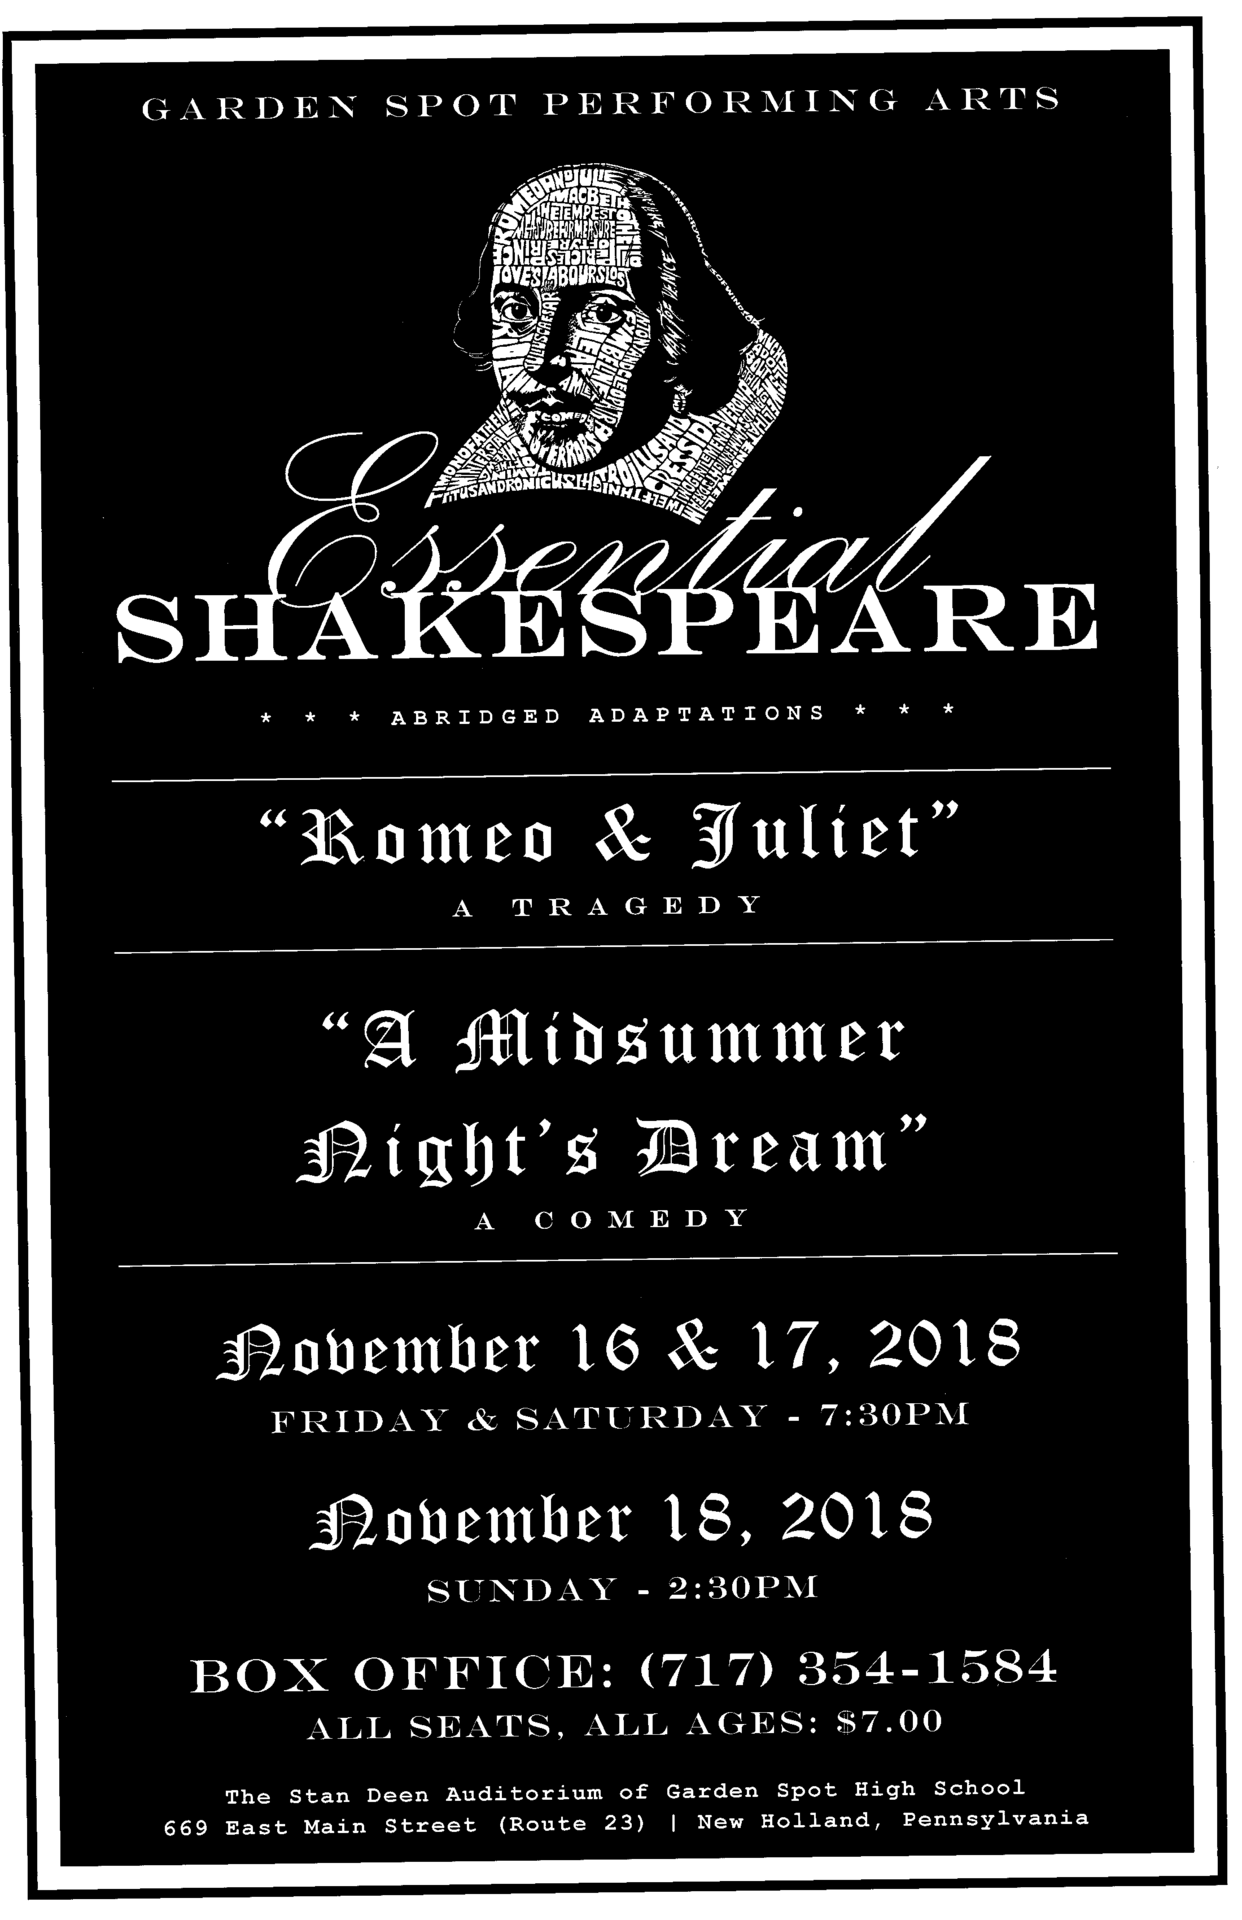 GSPA Essential Shakespeare Poster